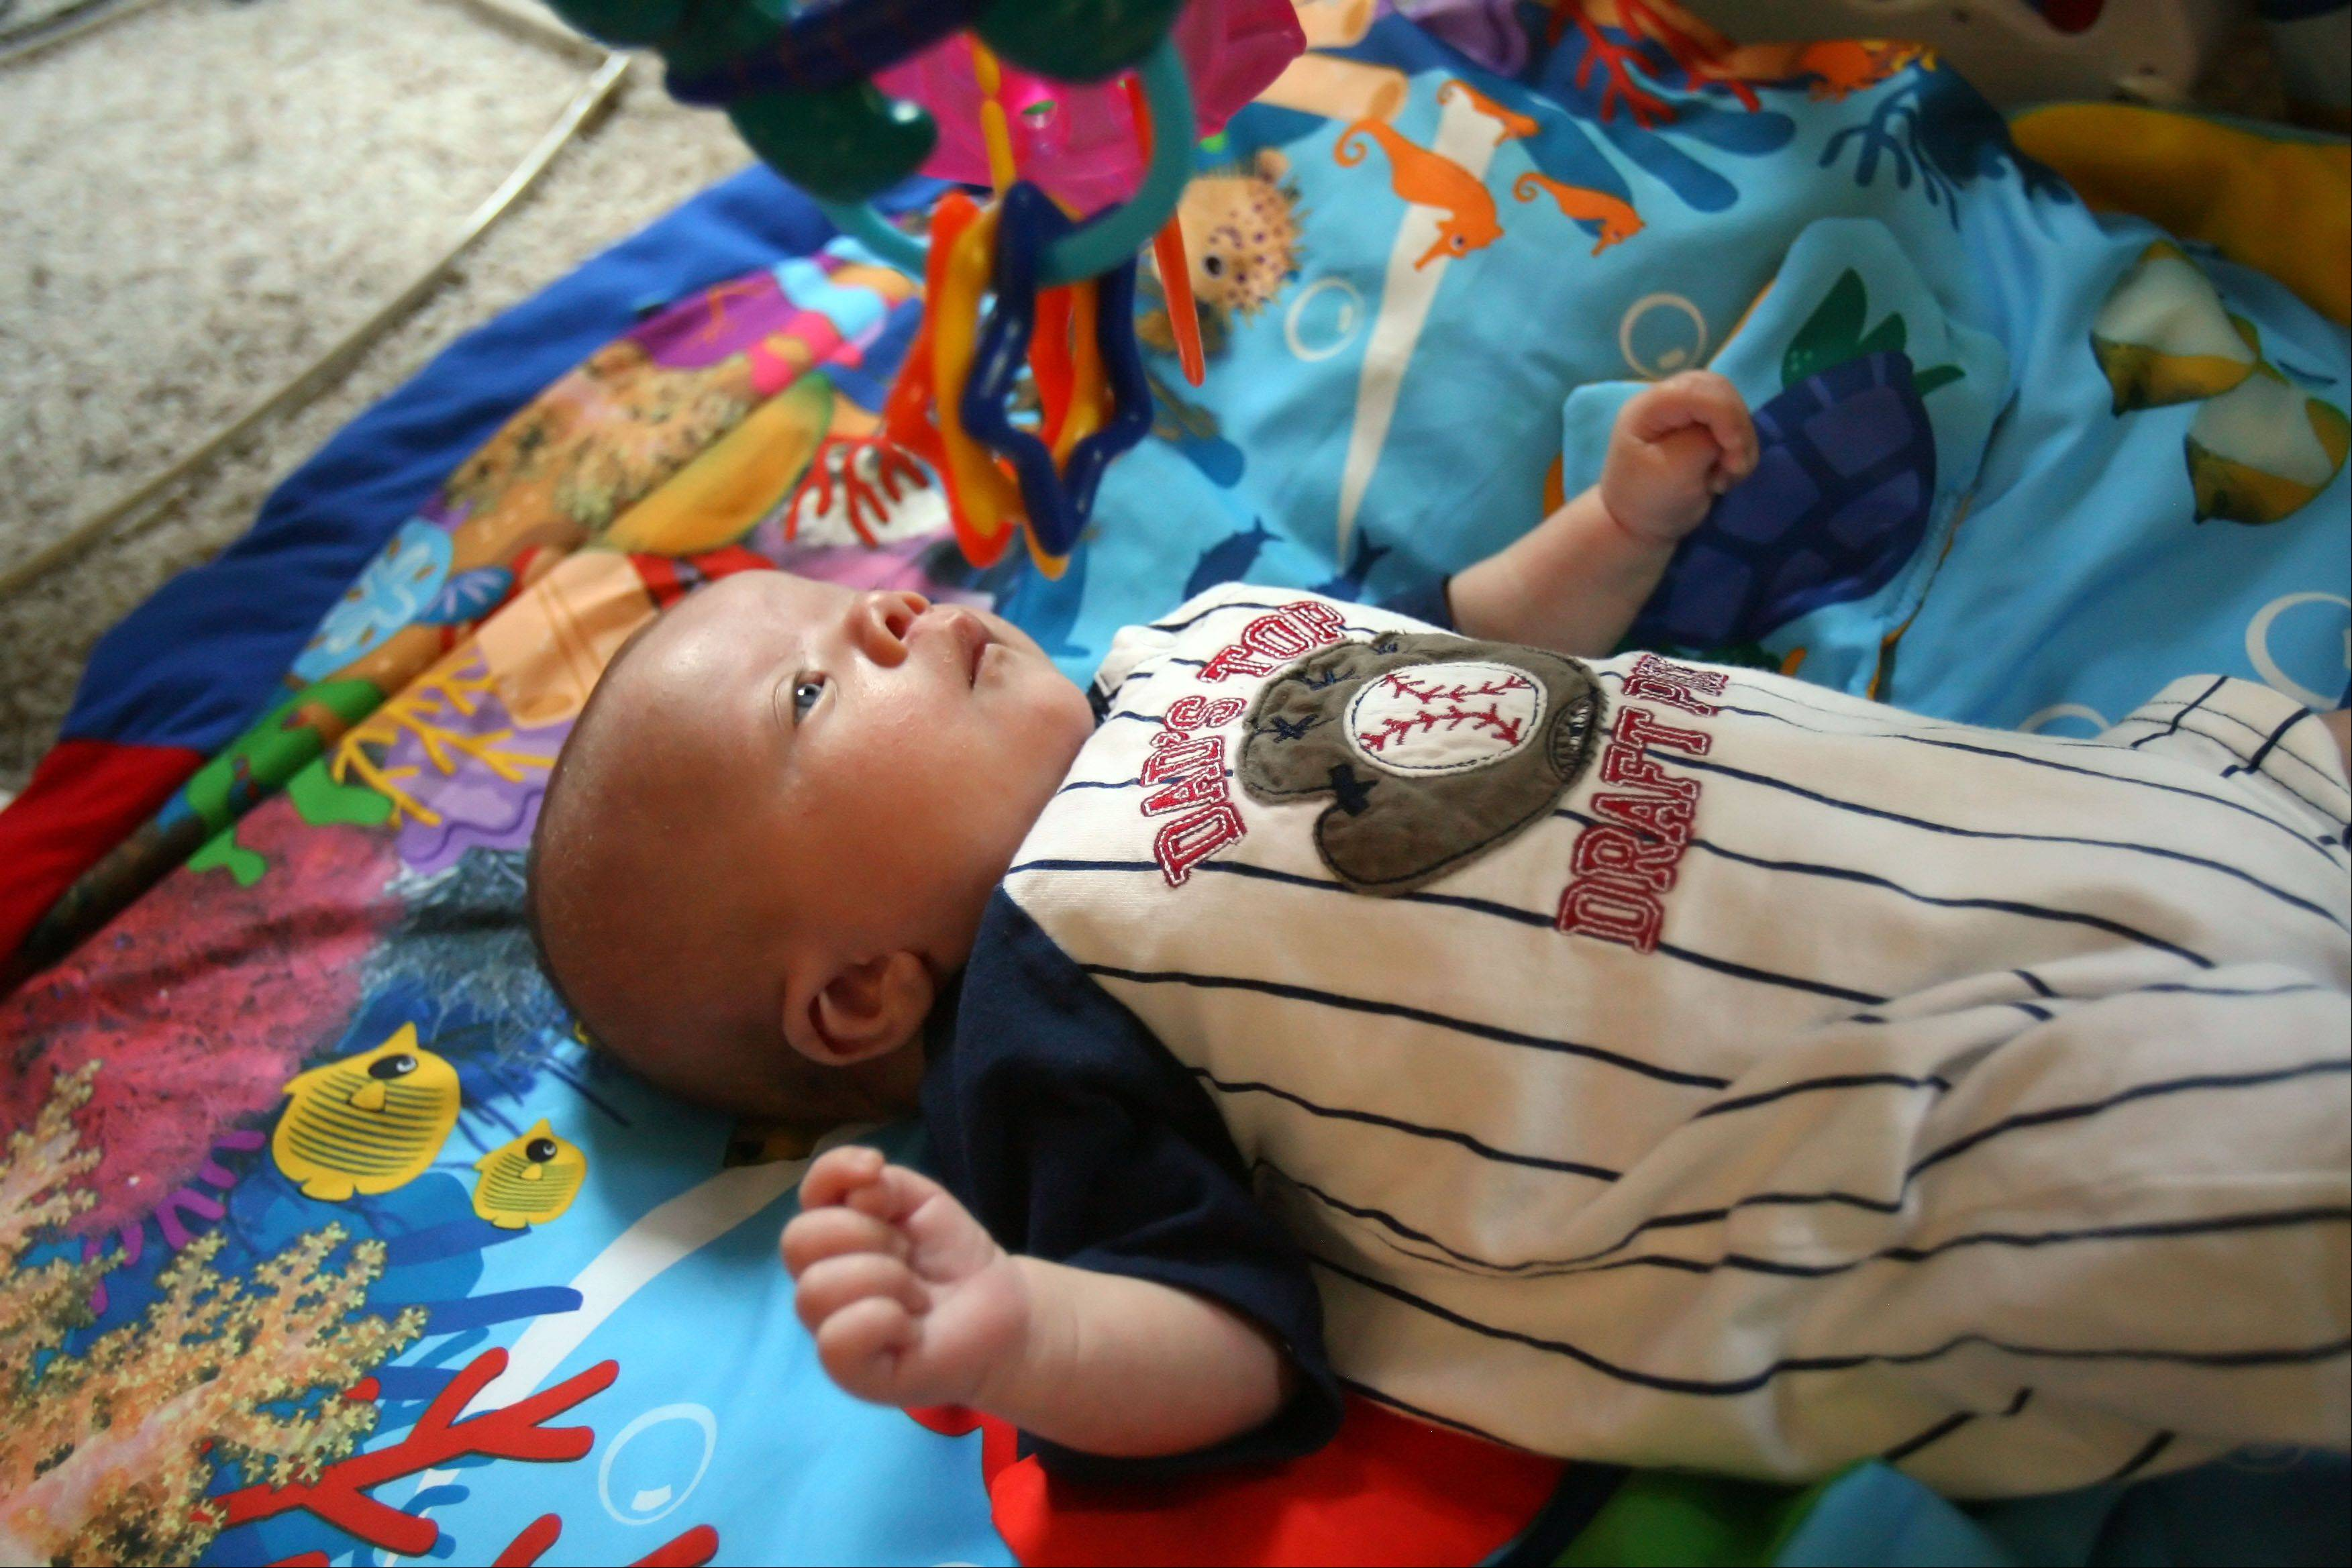 Katie Thorstenson's 2-month-old baby, Drew, does some mat time at their home in Wauconda. Drew has Noonan Syndrome.